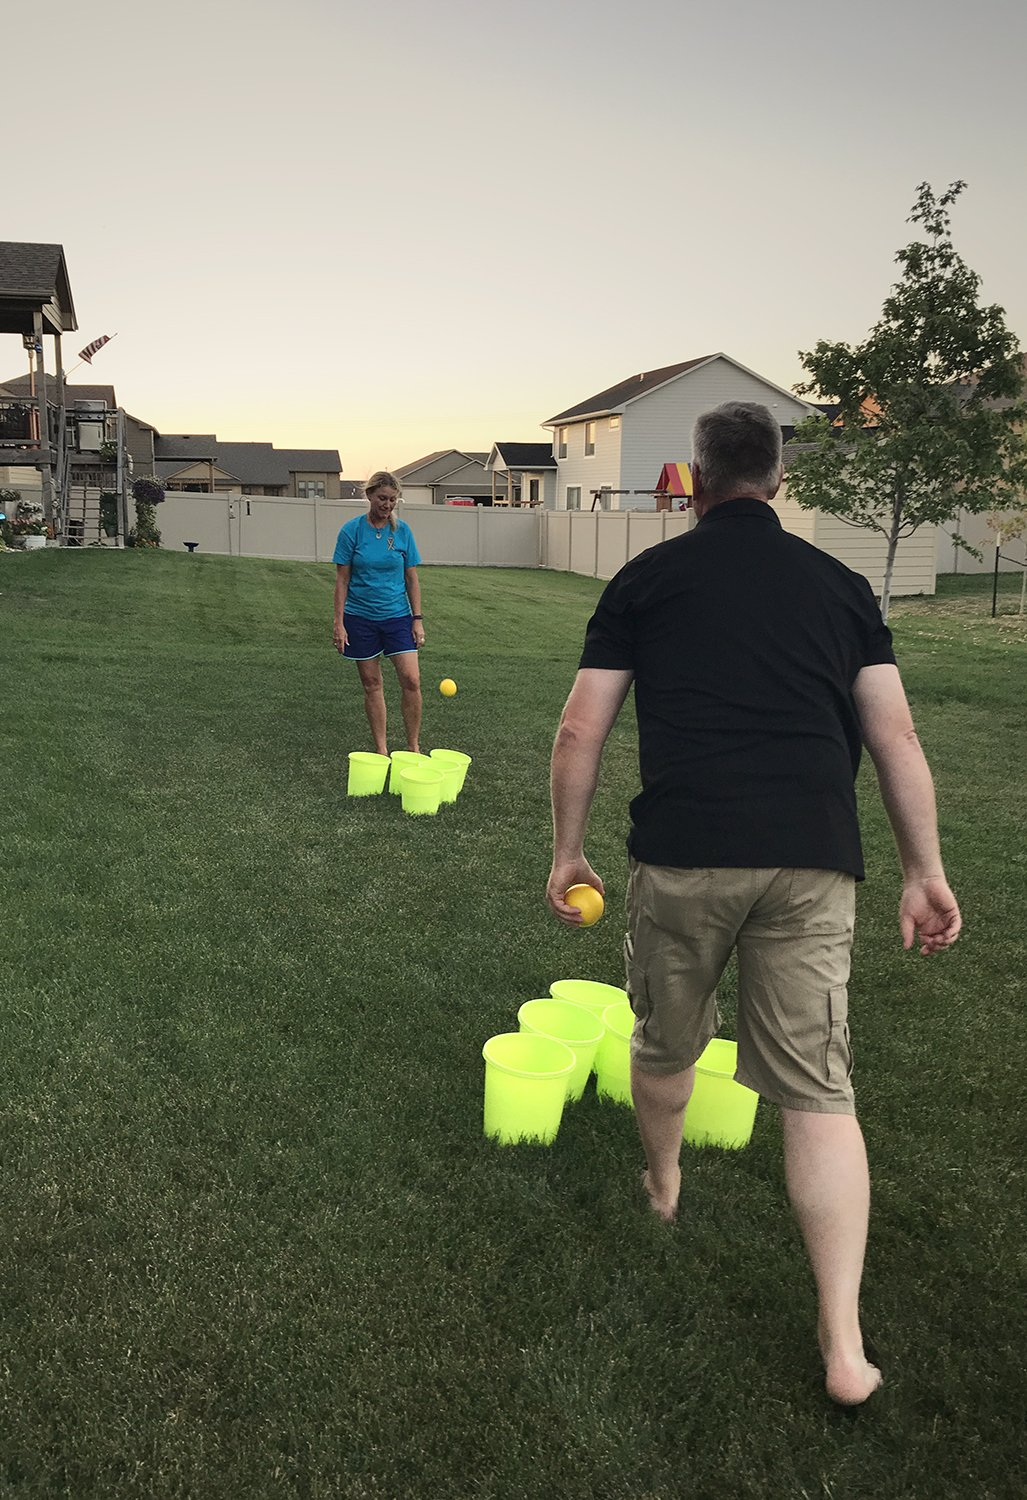 Get Out! Patio Pong – Giant Yard Beer Pong Set for Outdoor Fun – 12 Buckets, 2 Balls, 1 Drawstring Carrying Bag by Get Out! (Image #6)